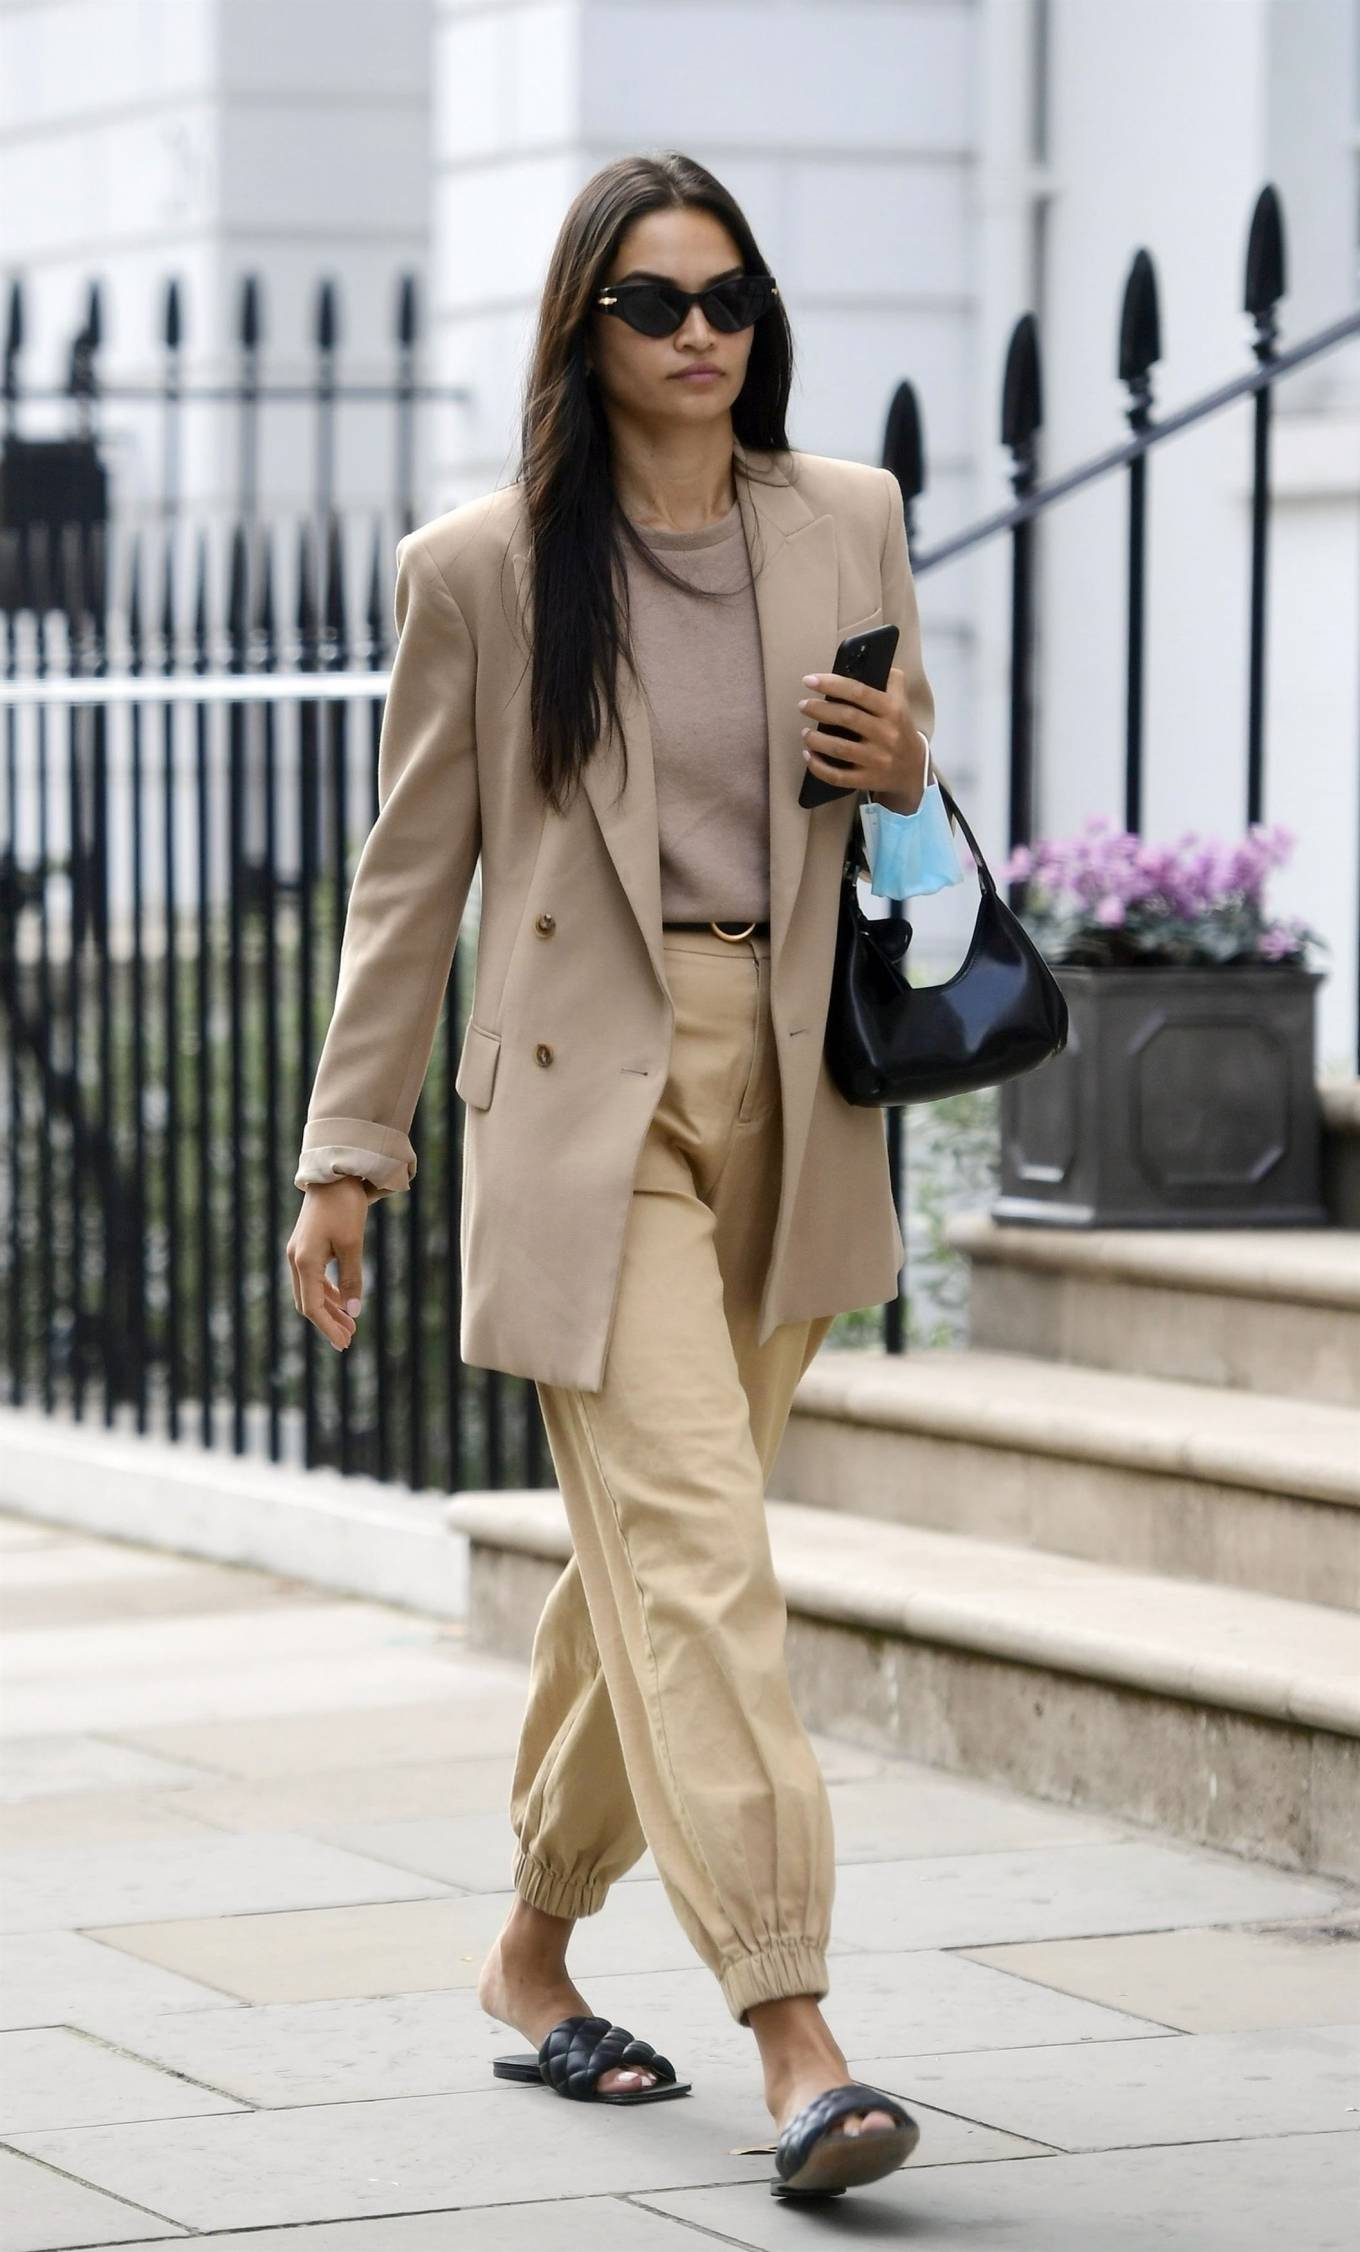 Shanina Shaik 2020 : Shanina Shaik – Stylish in her beige trousers and jacket while out in London-03